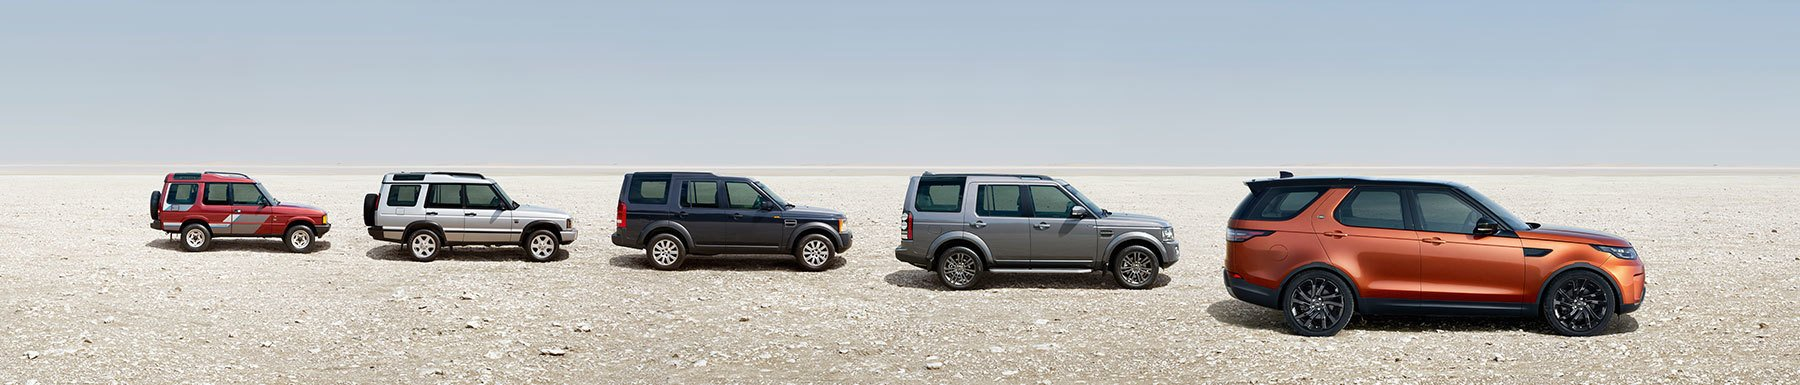 Land Rover Discovery From Oldest to Newest